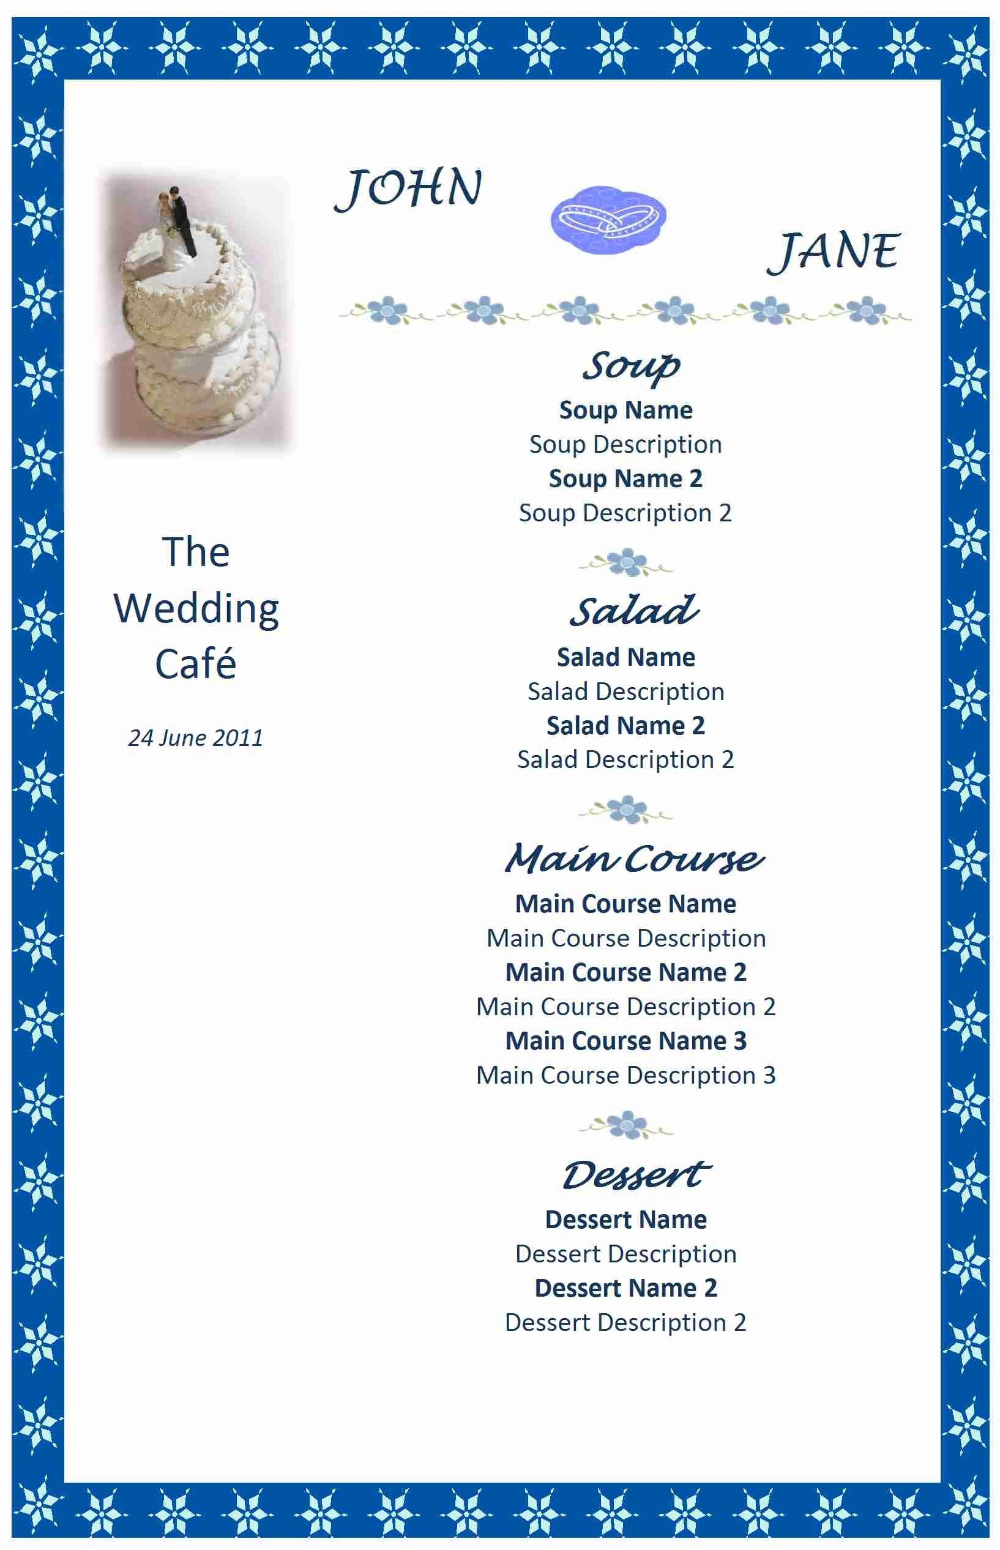 Wedding Menu Templates Free Microsoft Word Click Here For A Free Regarding Free Wedding Menu Template For Word - 10+ Professional Templates Ideas | 10+ Professional Templates Ideas #weddingmenutemplate